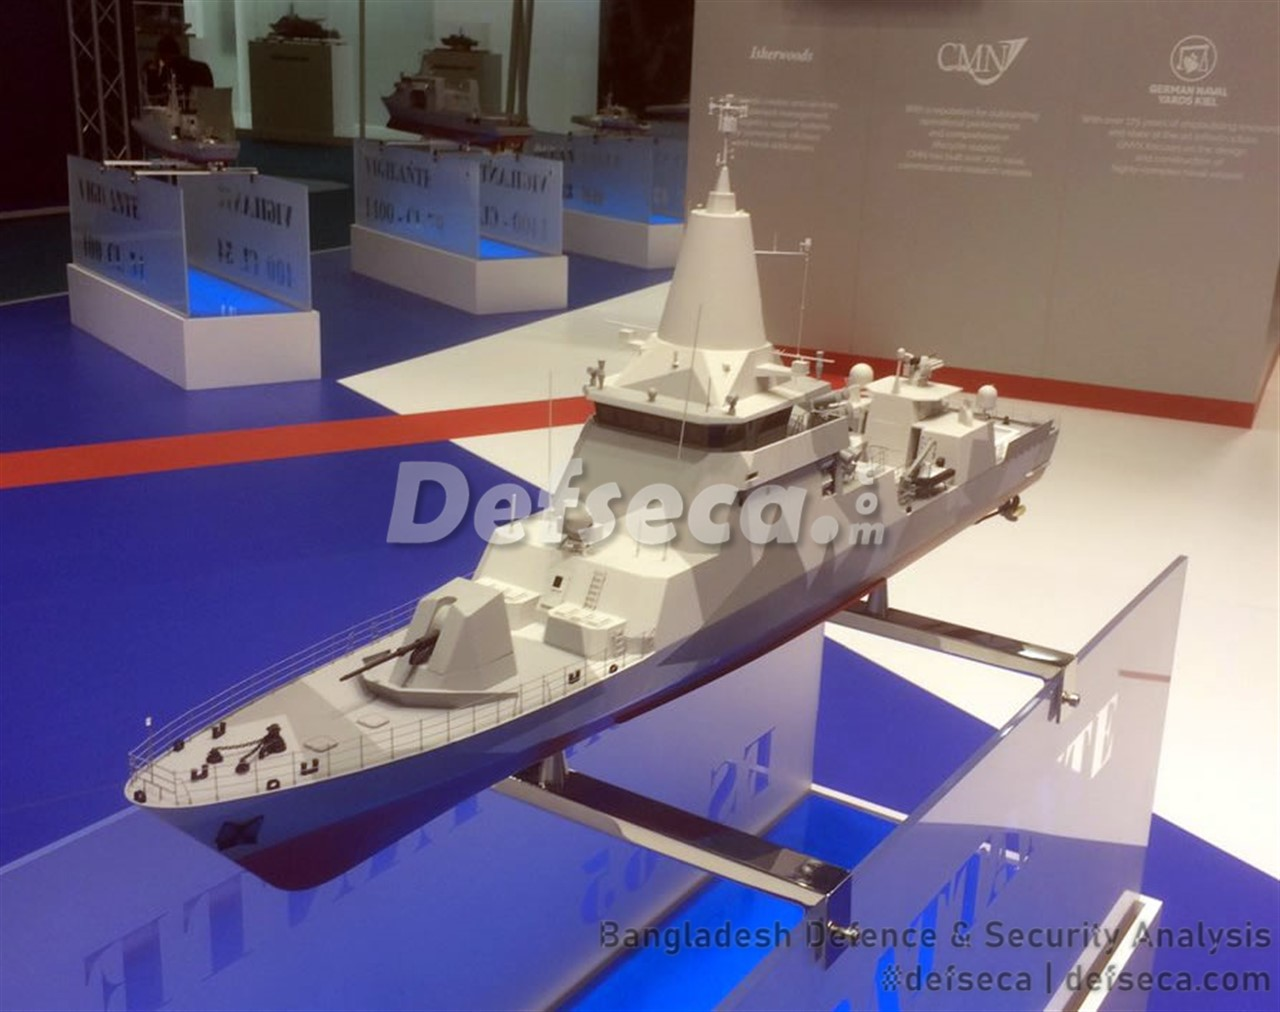 DEW wins contract for Bangladesh Navy's next generation LPC